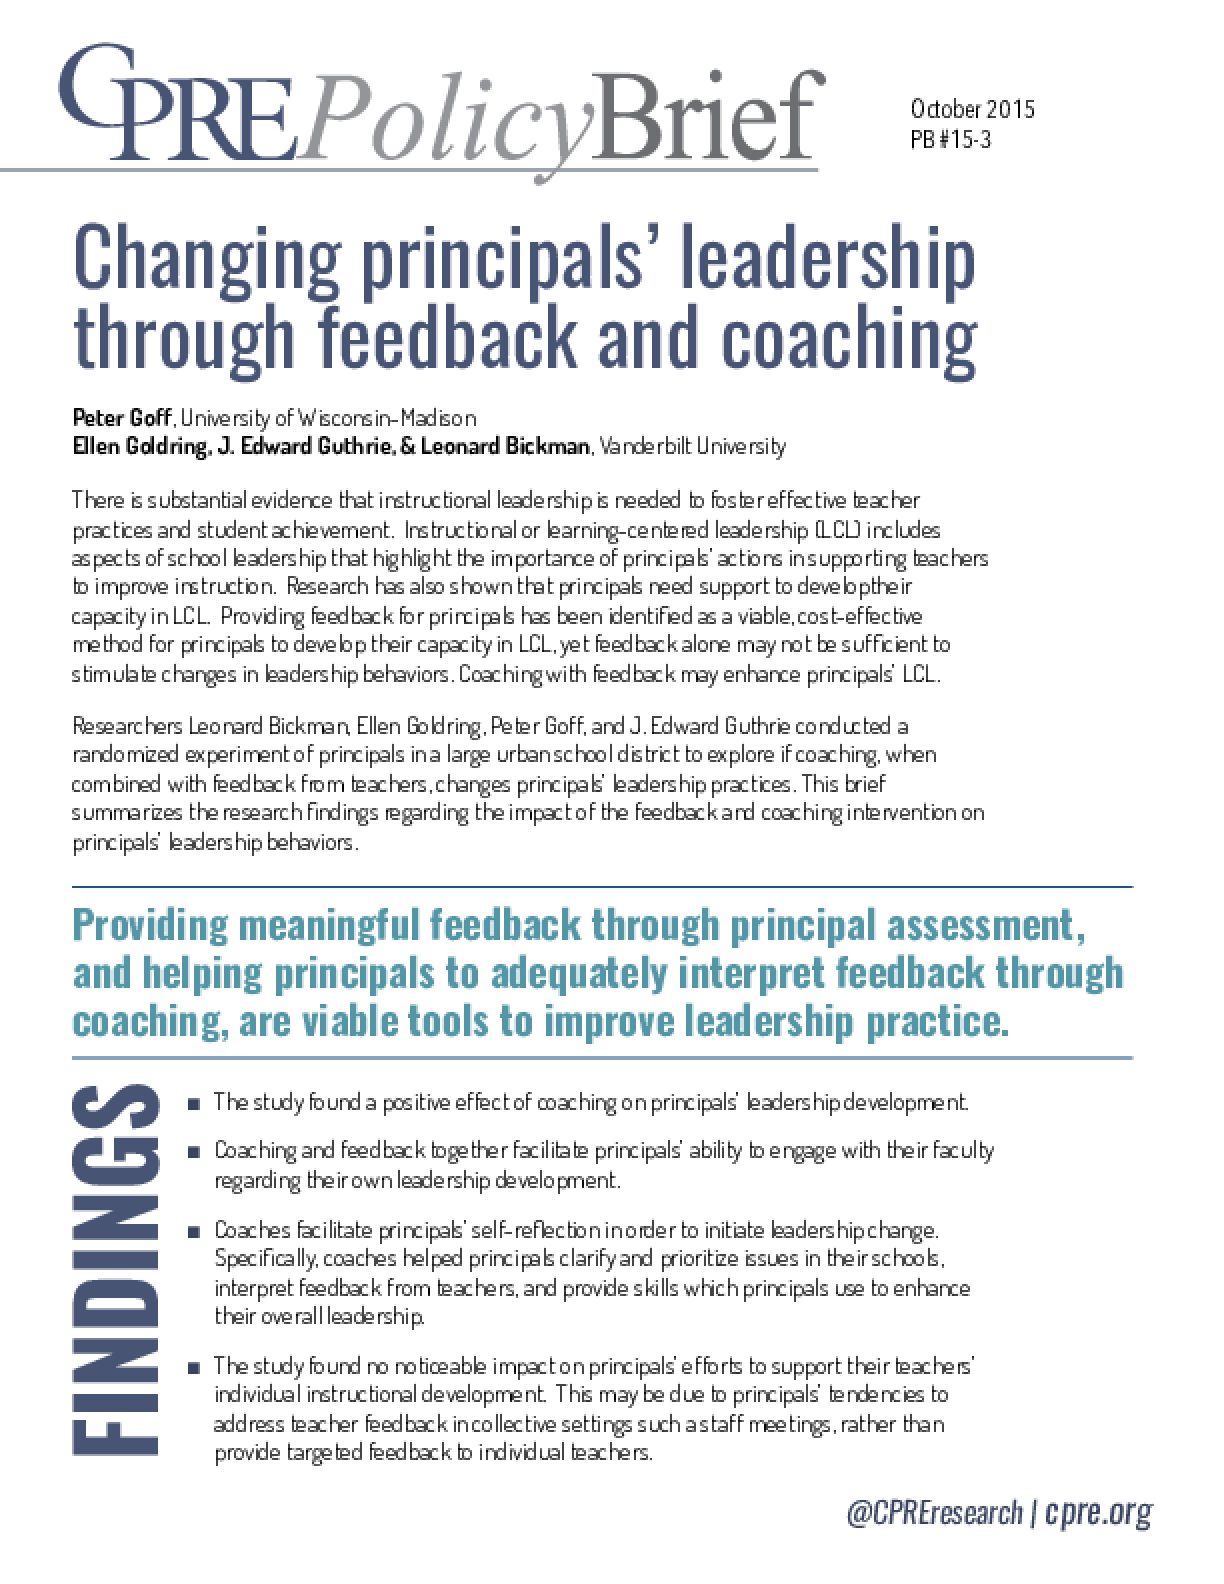 Changing Principals' Leadership through Feedback and Coaching